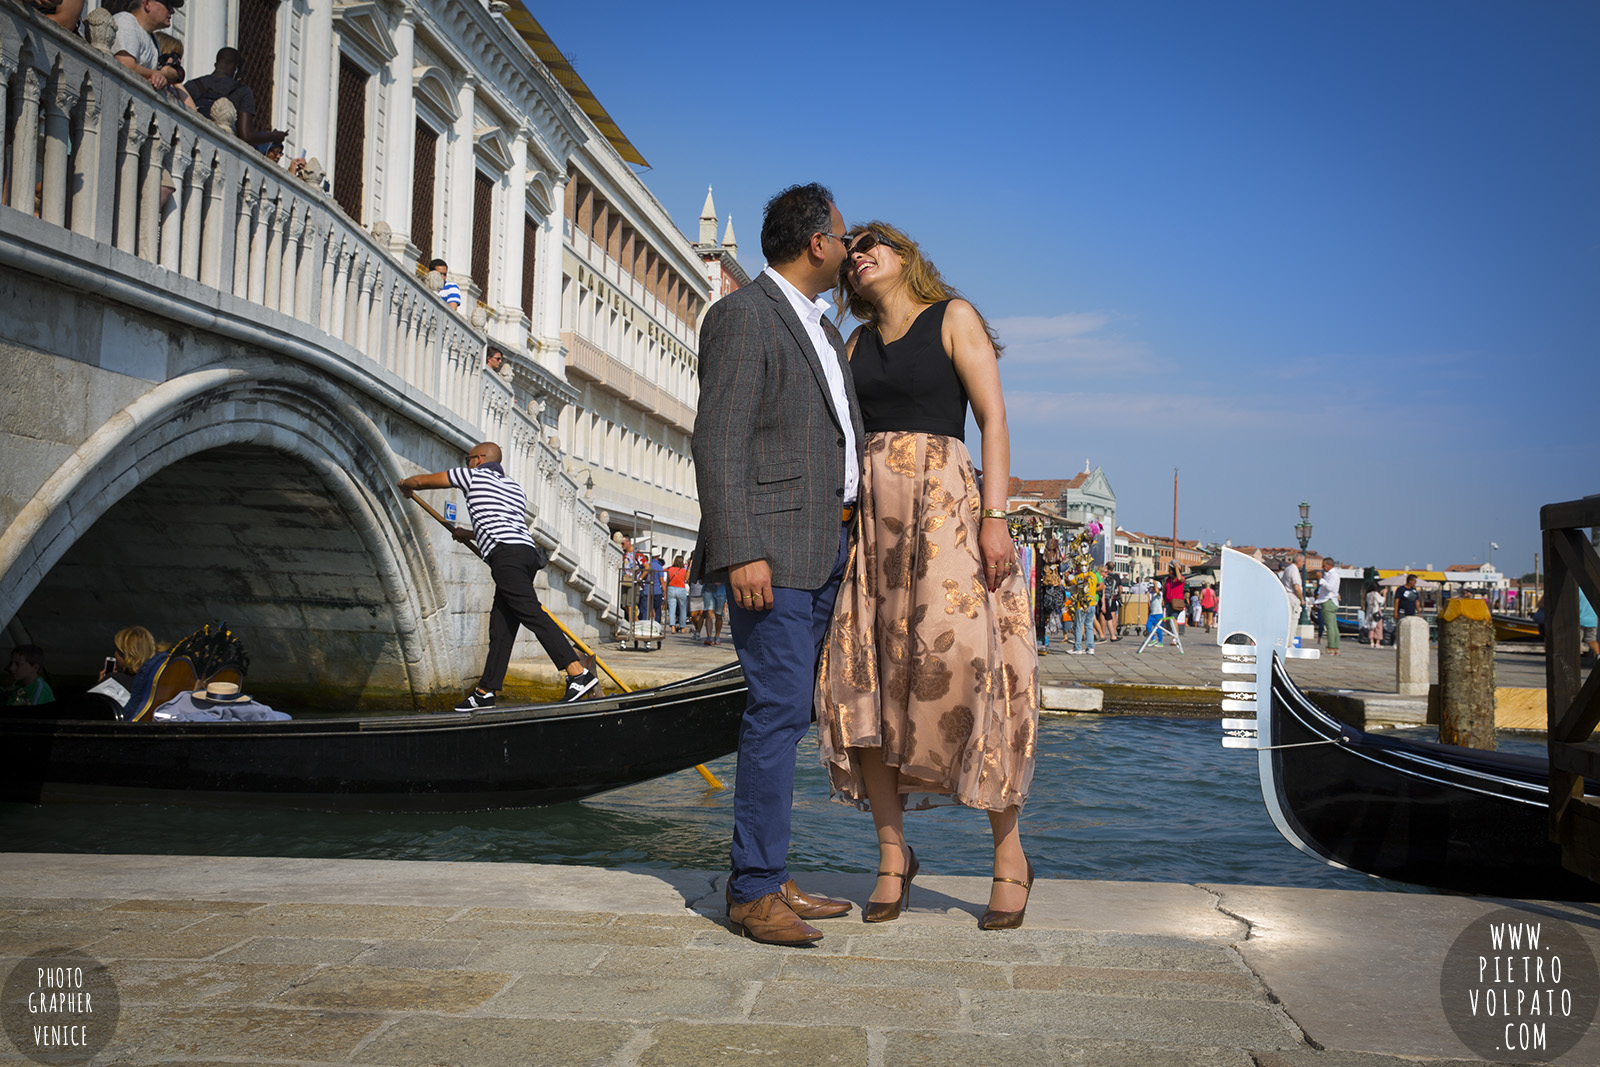 Venice photographer provides a wedding anniversary photo shoot for a couple on vacation - pictures about a walking tour and gondola ride